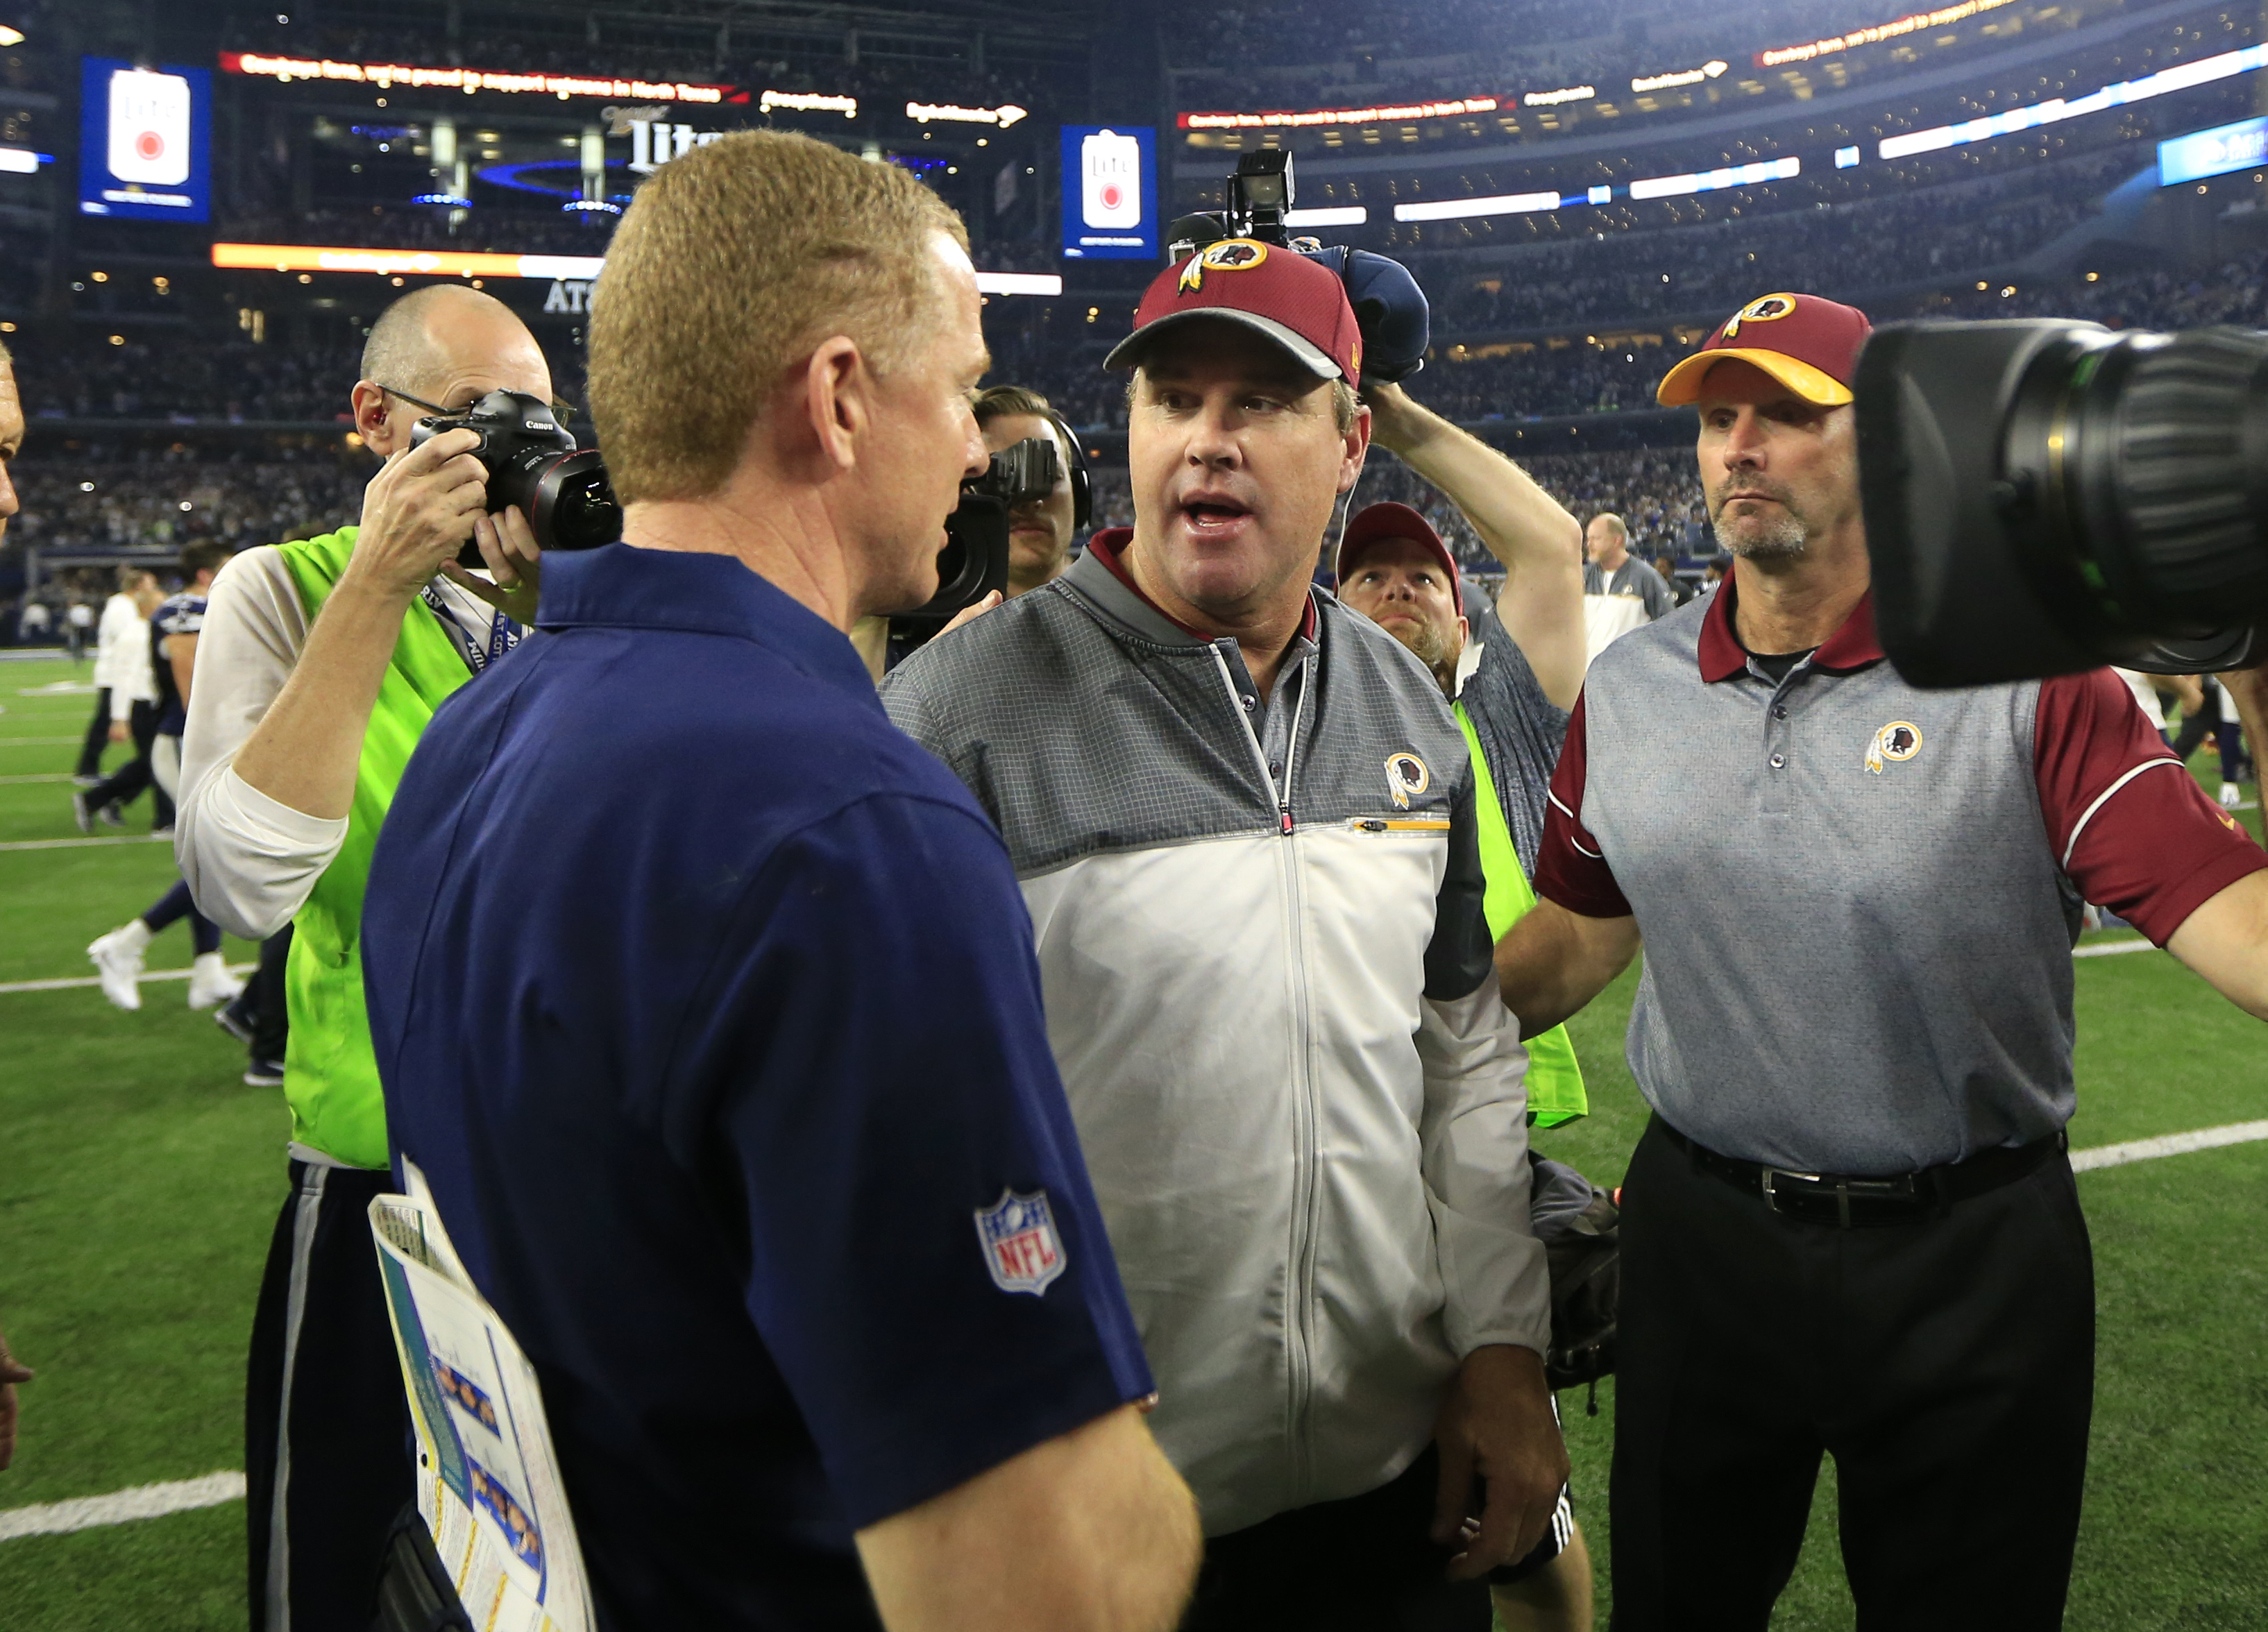 Dallas Cowboys coach Jason Garrett, left, and Washington Redskins coach Jay Gruden, center, greet each other after an NFL football game, Thursday, Nov. 24, 2016, in Arlington, Texas. Dallas won 31-26. (AP Photo/Ron Jenkins)